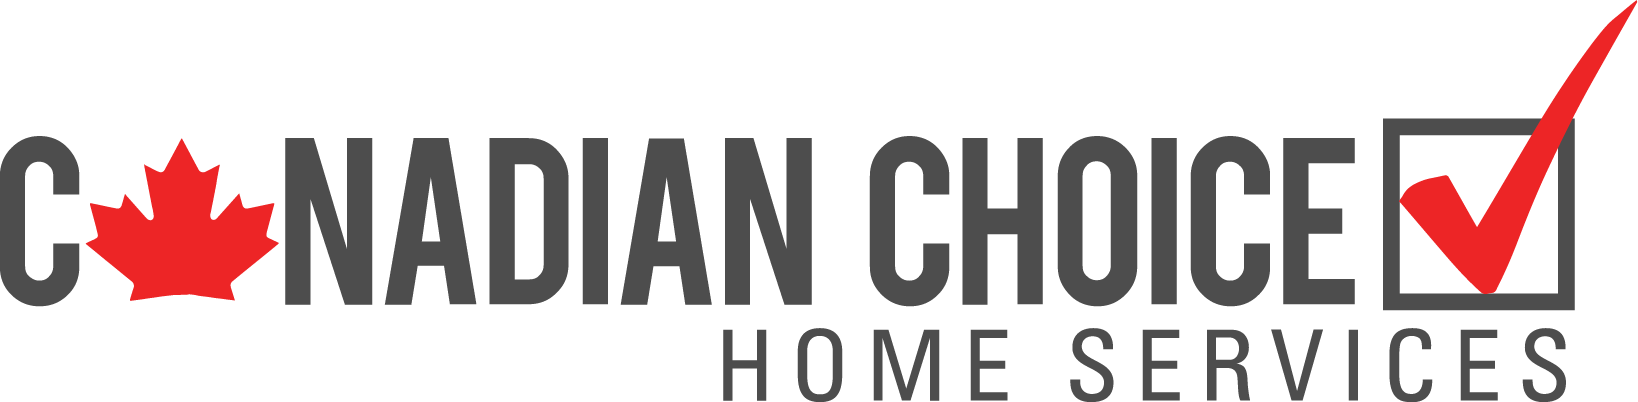 Canadian Choice Logo by Milaniz